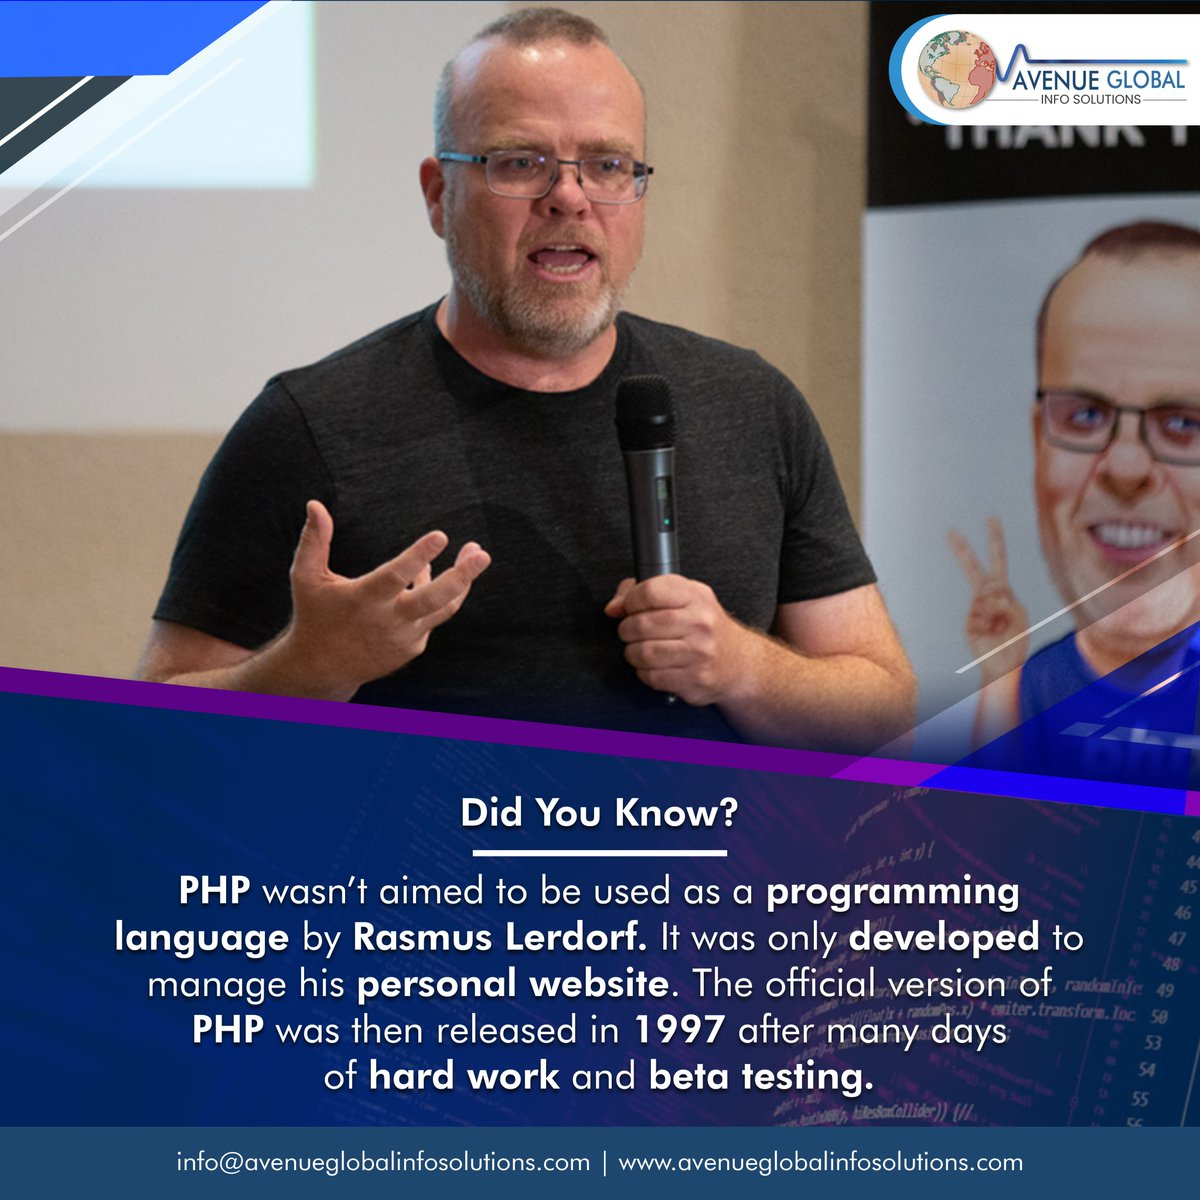 Did You Know?   #didyouknow #didyouknowfacts #facts #php #hardwork #hackathon #software #Web #technologyrocks #technologynews #technologysolutions #technologythesedays #techno #technology #techhouse #technomusic #technique #techie #andriodography #Invention #androidnesiapic.twitter.com/HjV07n6Nfn